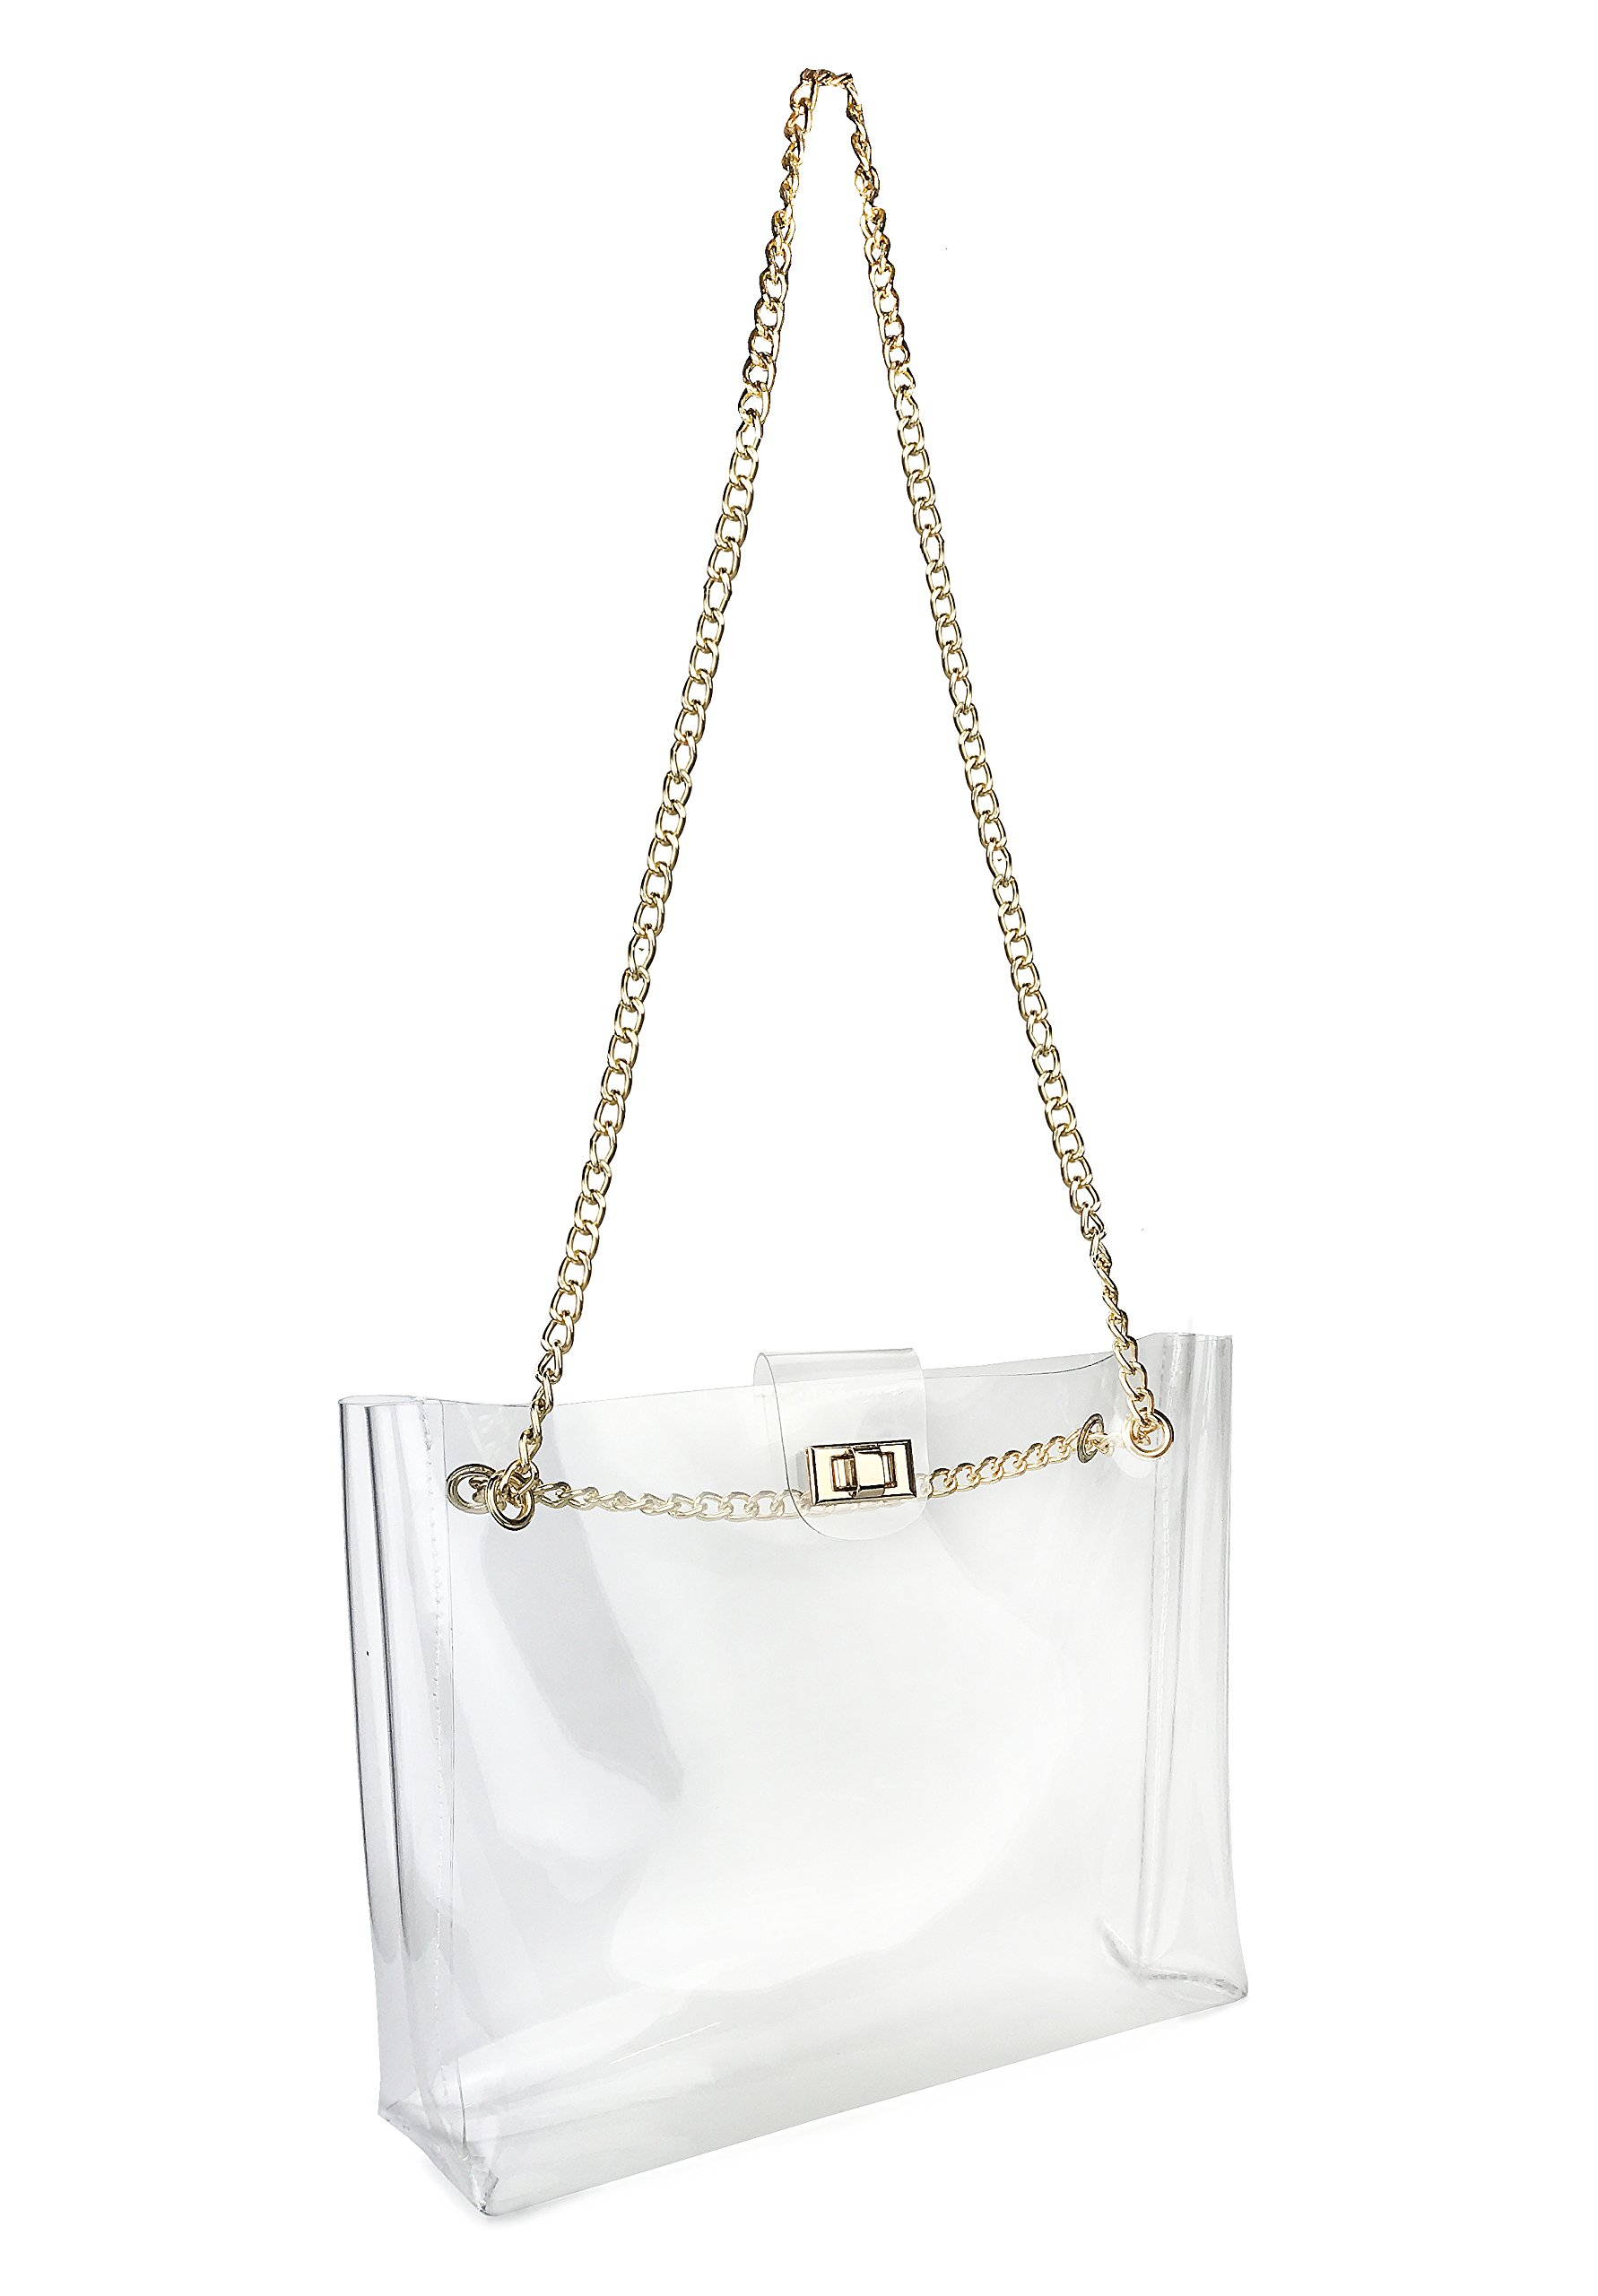 Multifunction Clear Chain Tote with Turn Lock Womens Shoulder Handbag (Clear) by Hoxis (Image #5)